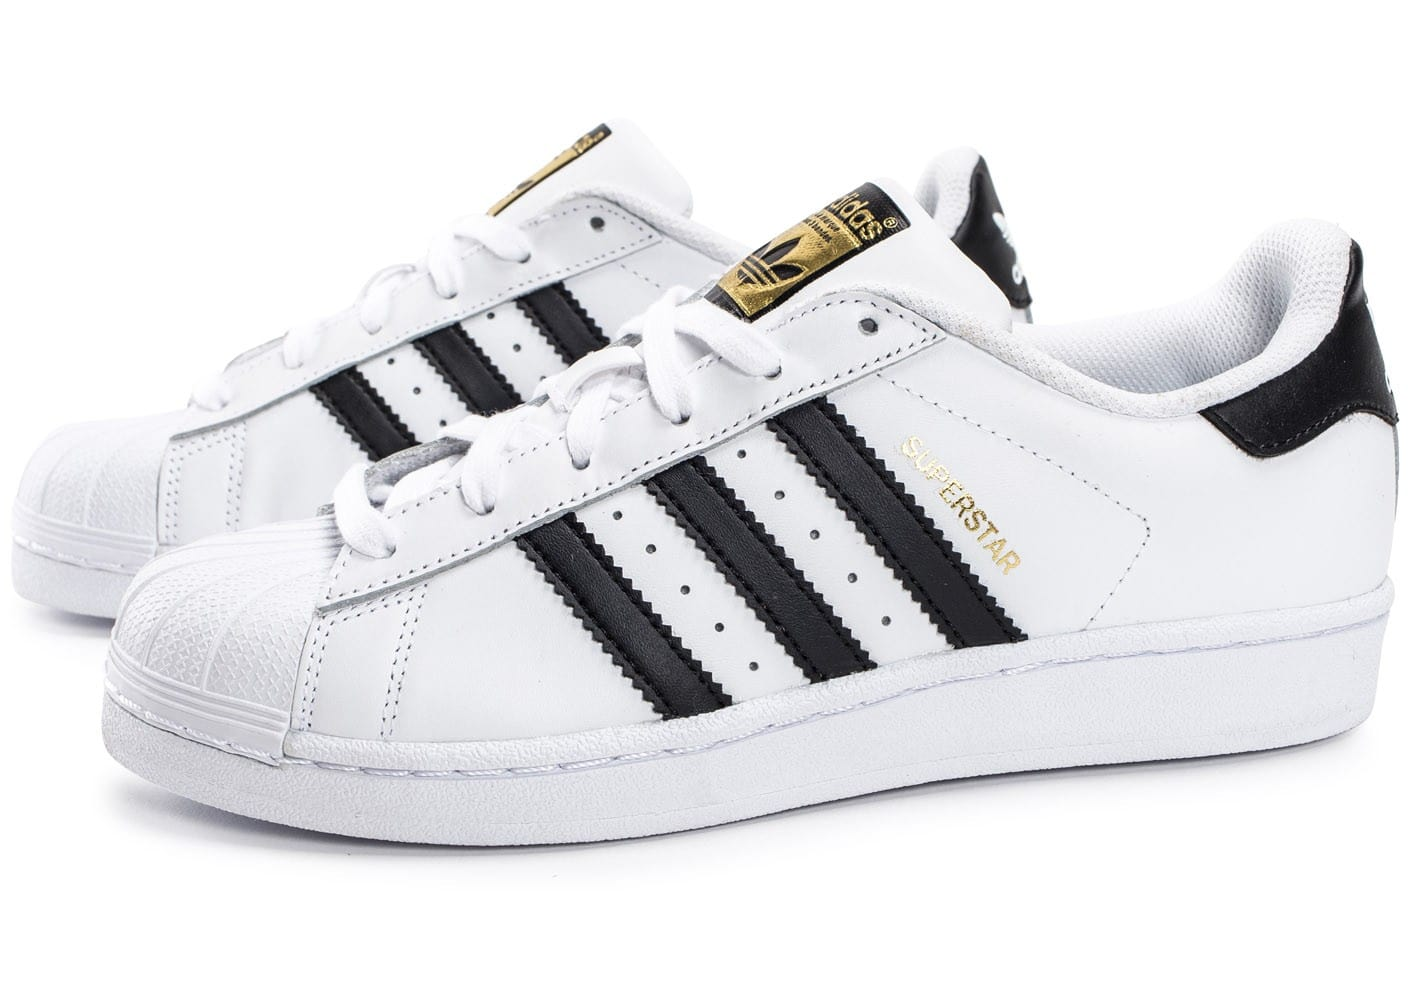 préférence Blancnoir Baskets adidas Originals Superstar